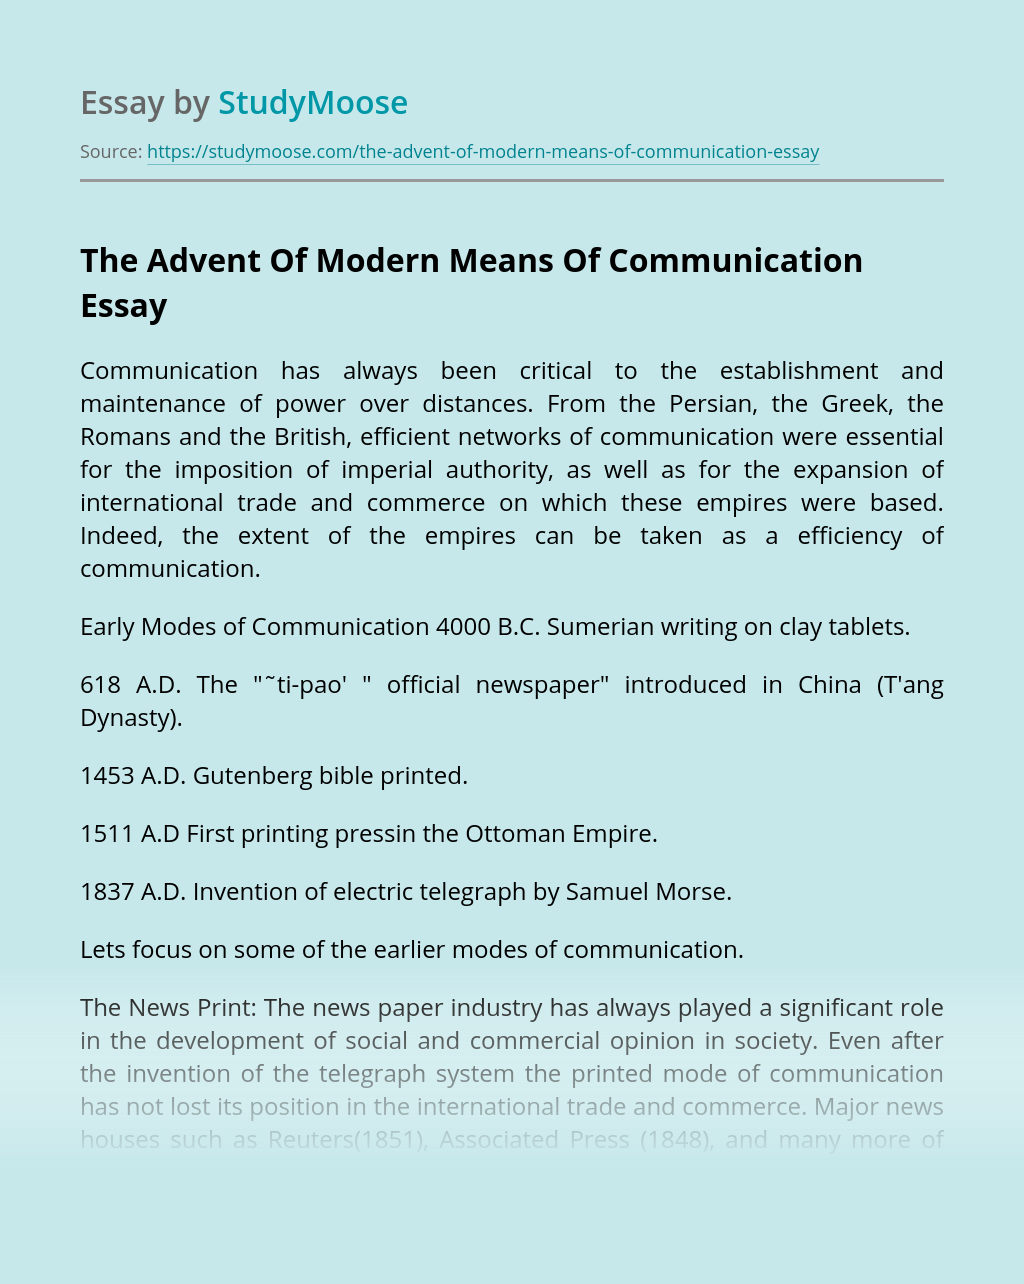 The Advent Of Modern Means Of Communication